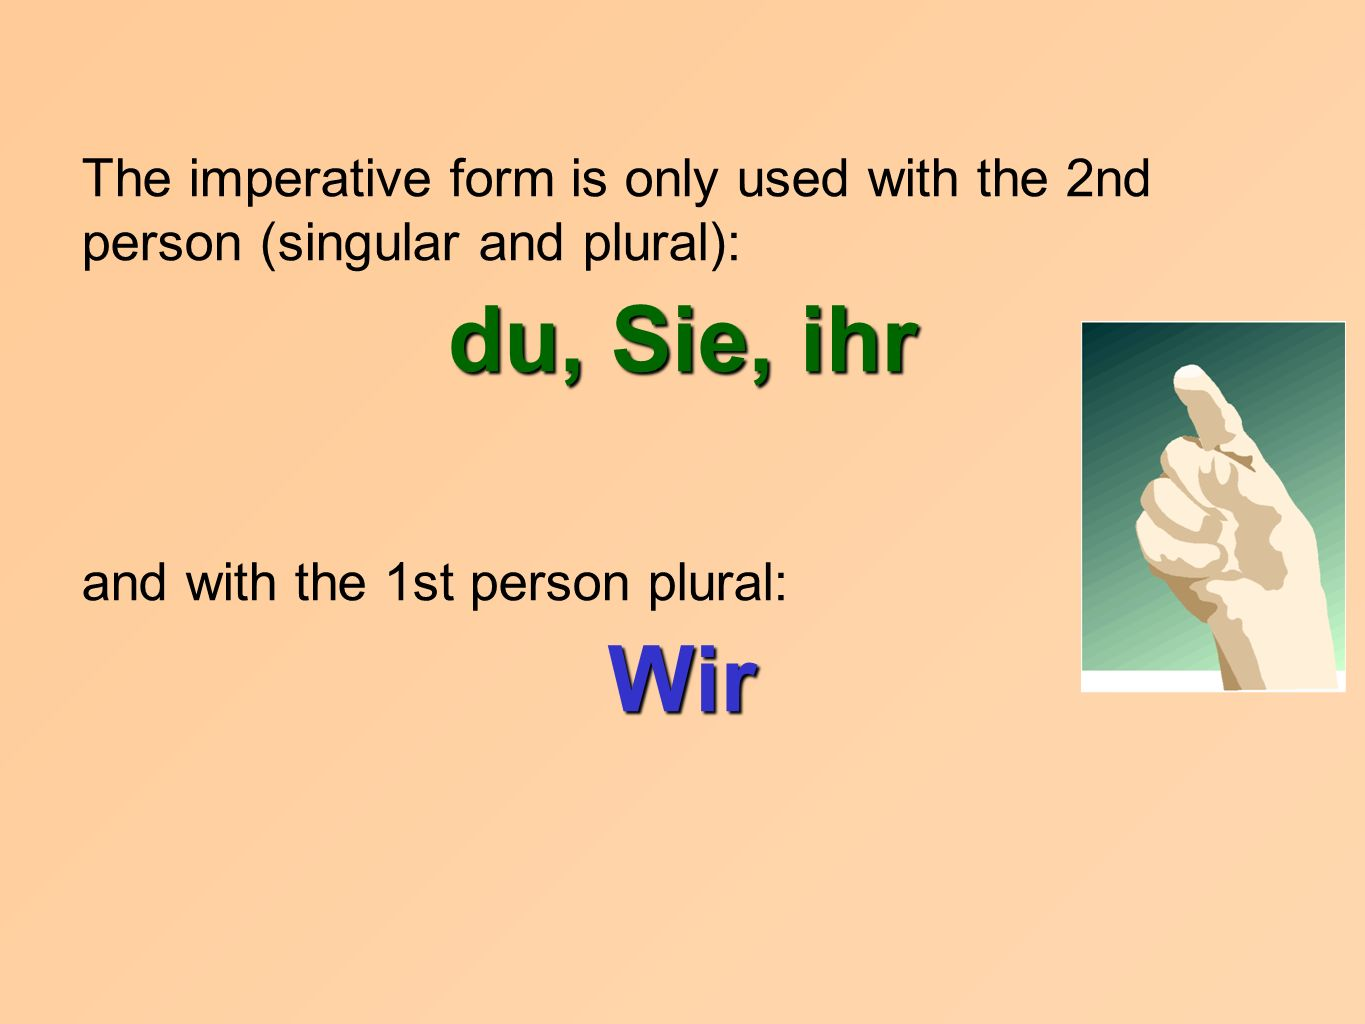 The imperative form is only used with the 2nd person (singular and plural):